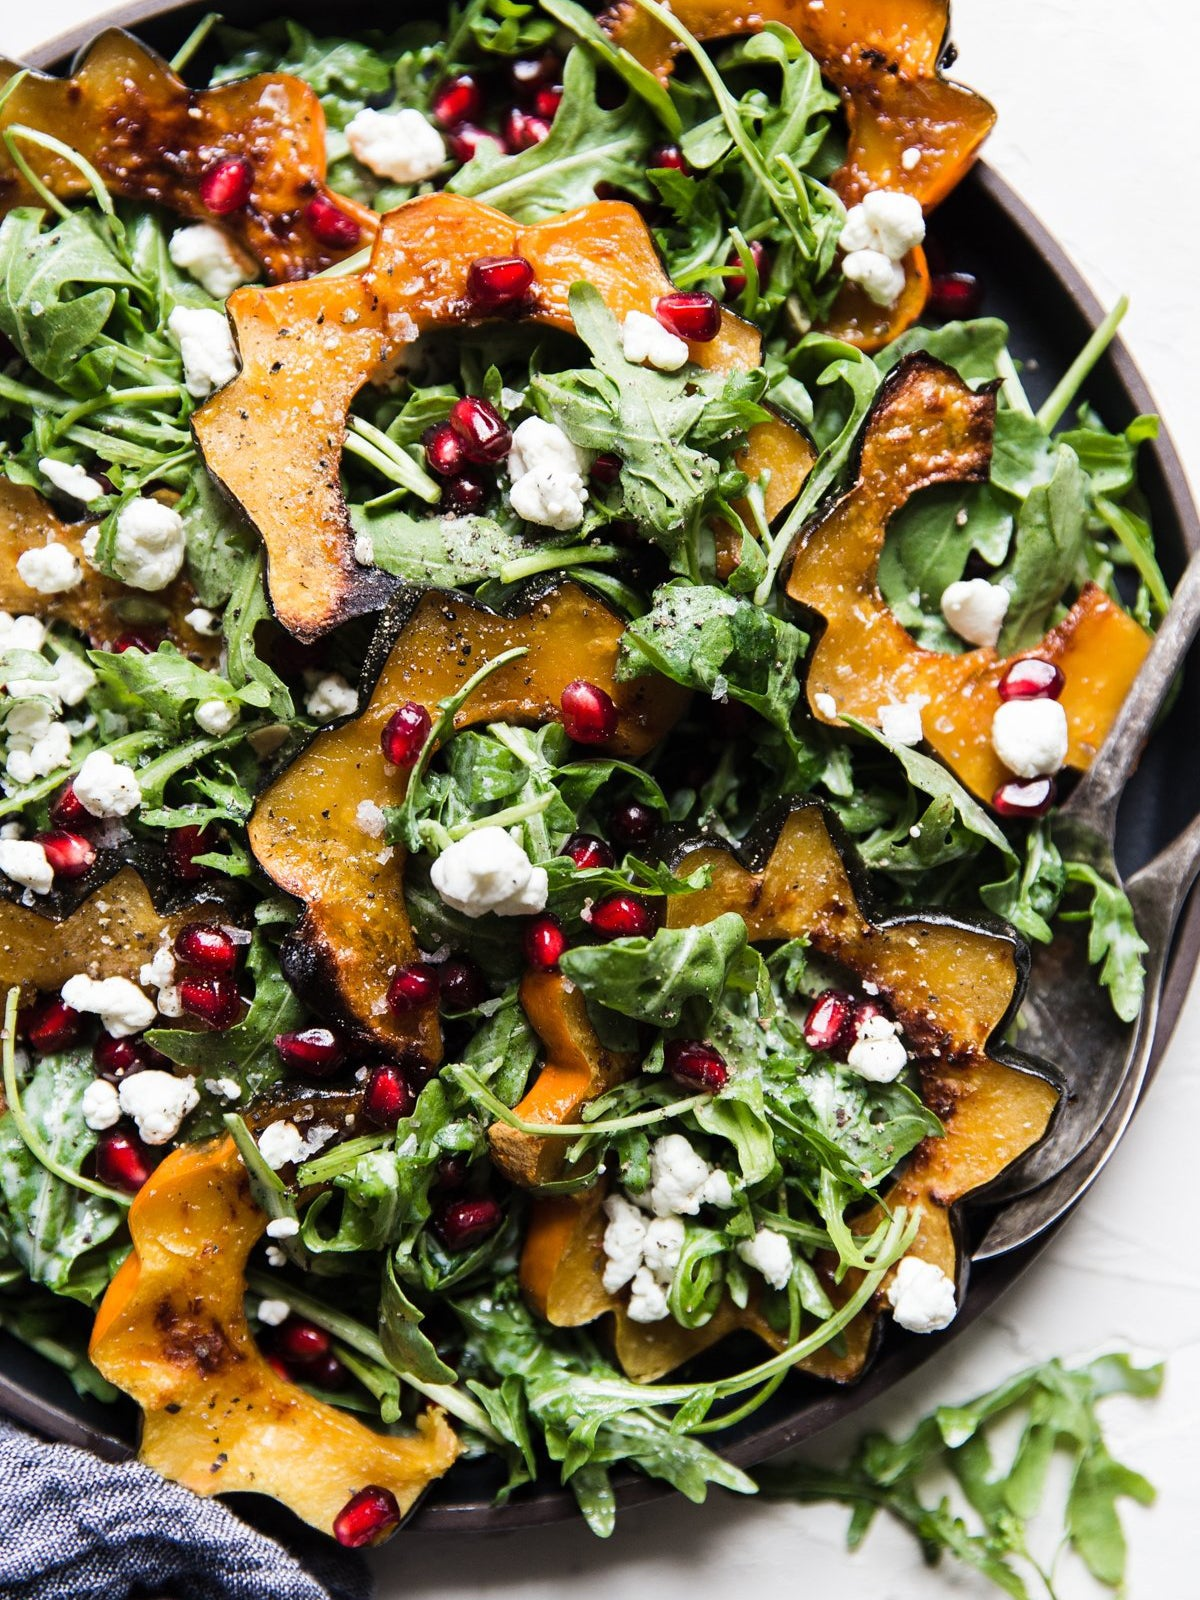 Salad with acorn squash slices, goat cheese dressing, and pomegranate seeds.